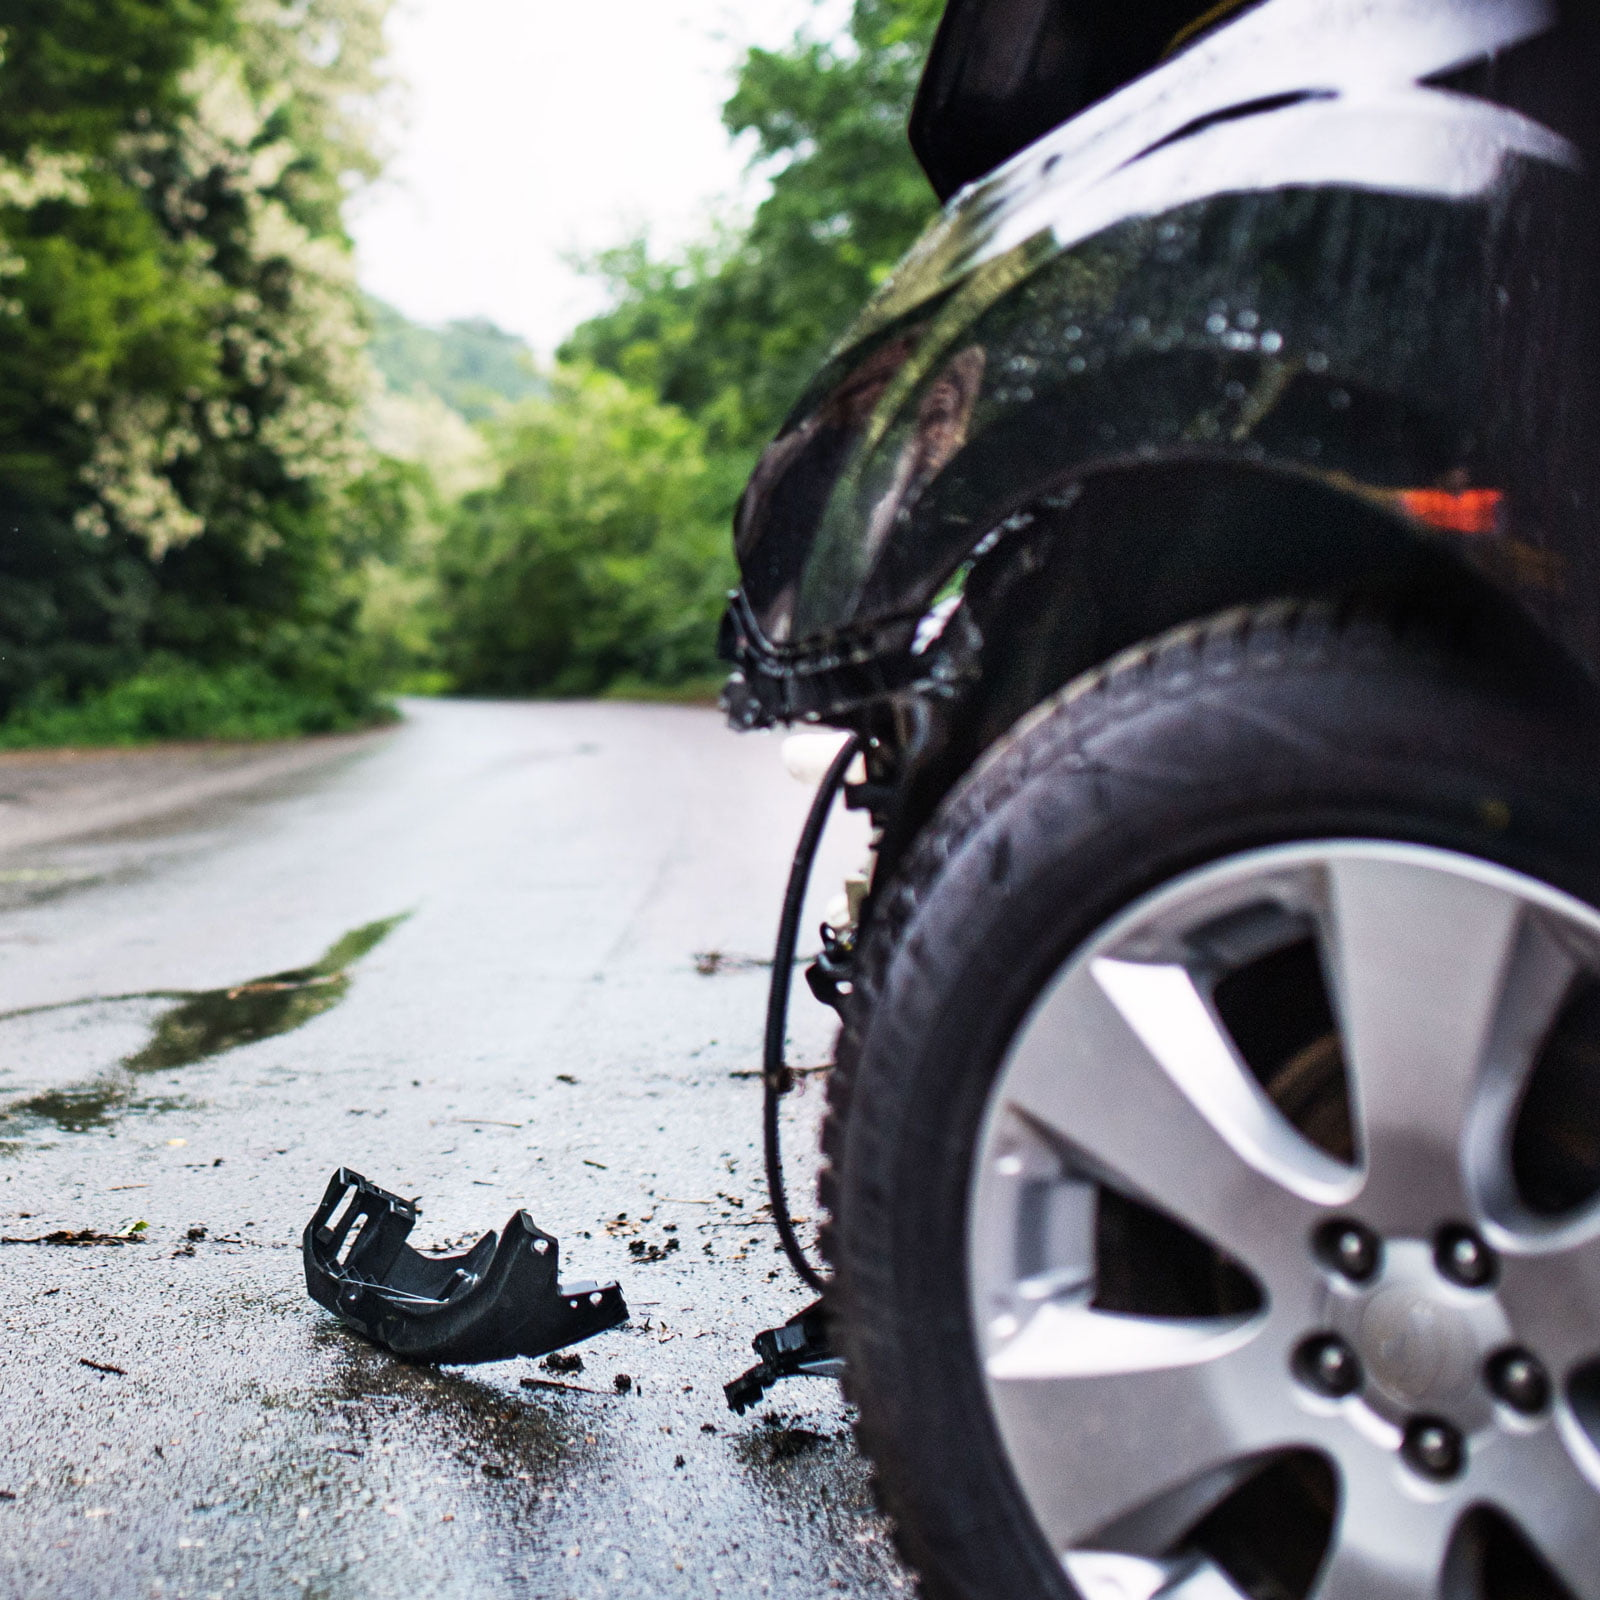 The results of an automobile accident.